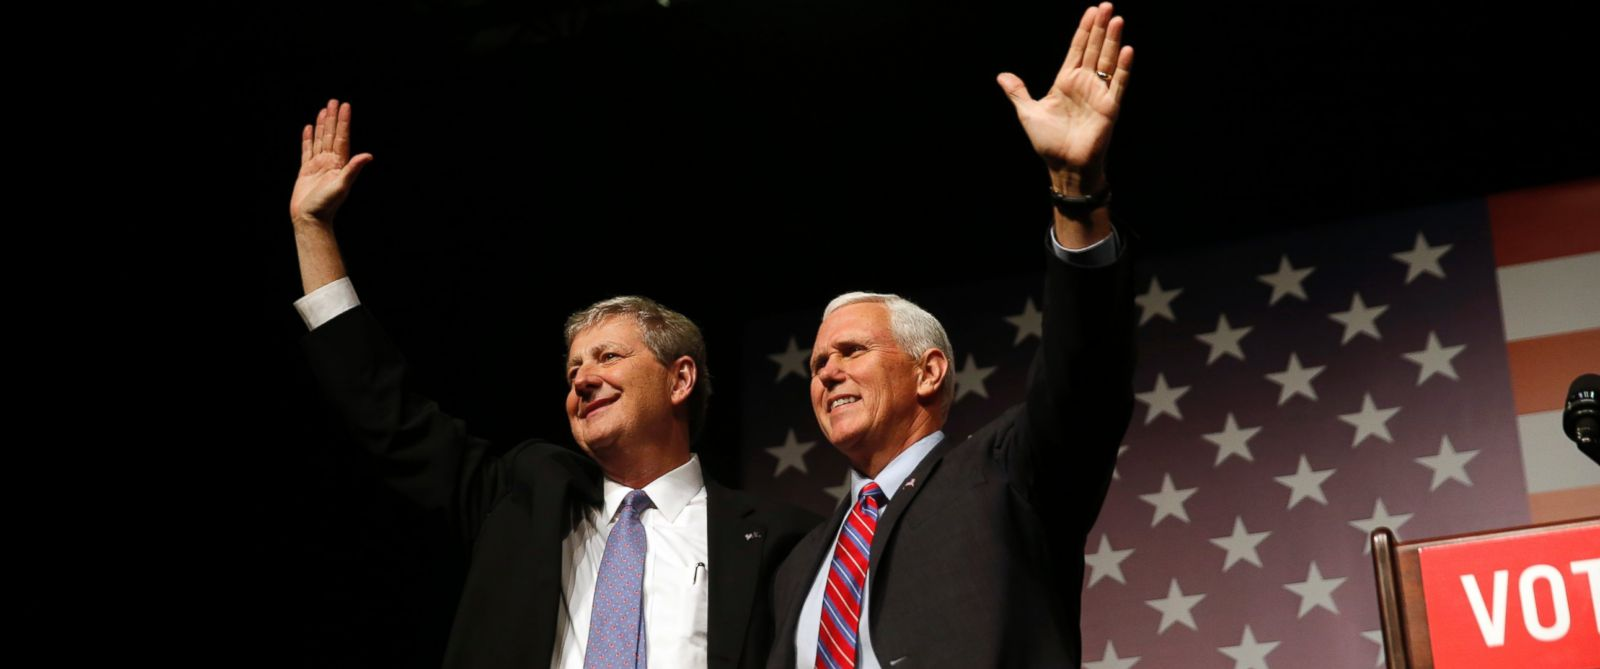 Mike Pence Returns to Campaign Trail for GOP Senate ...